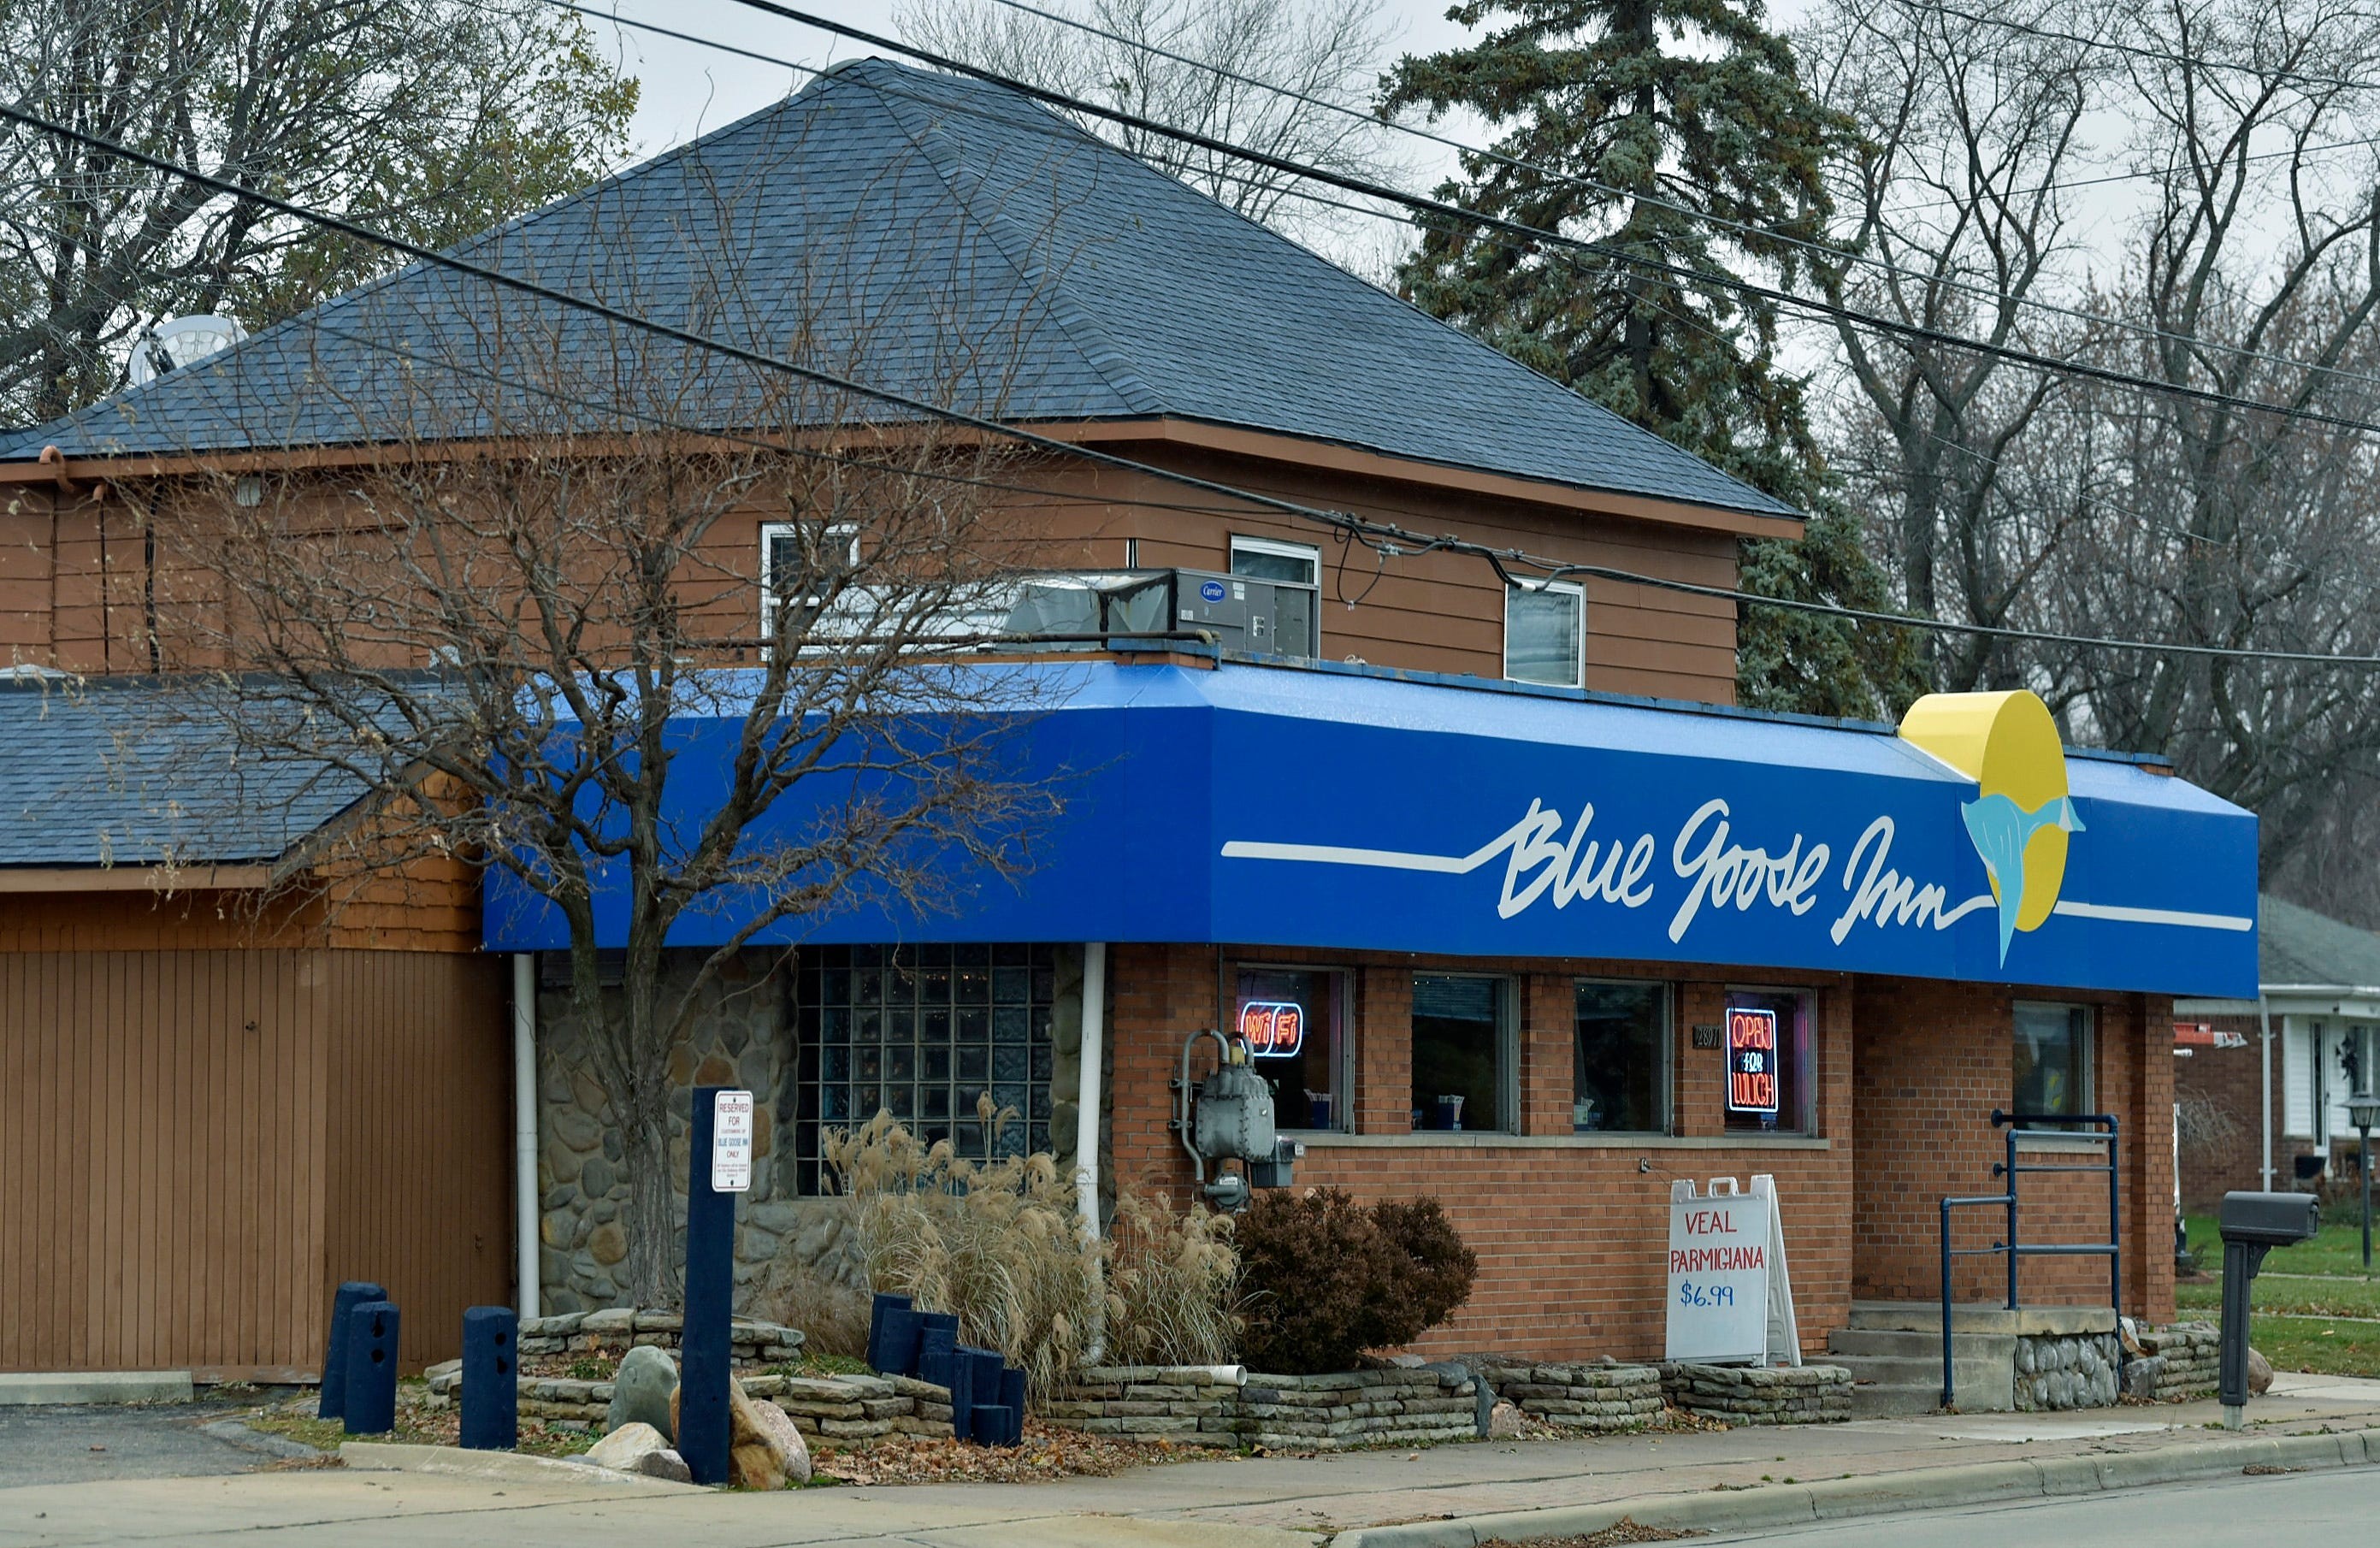 Dining Review: Blue Goose Inn has social vibe, welcoming menu